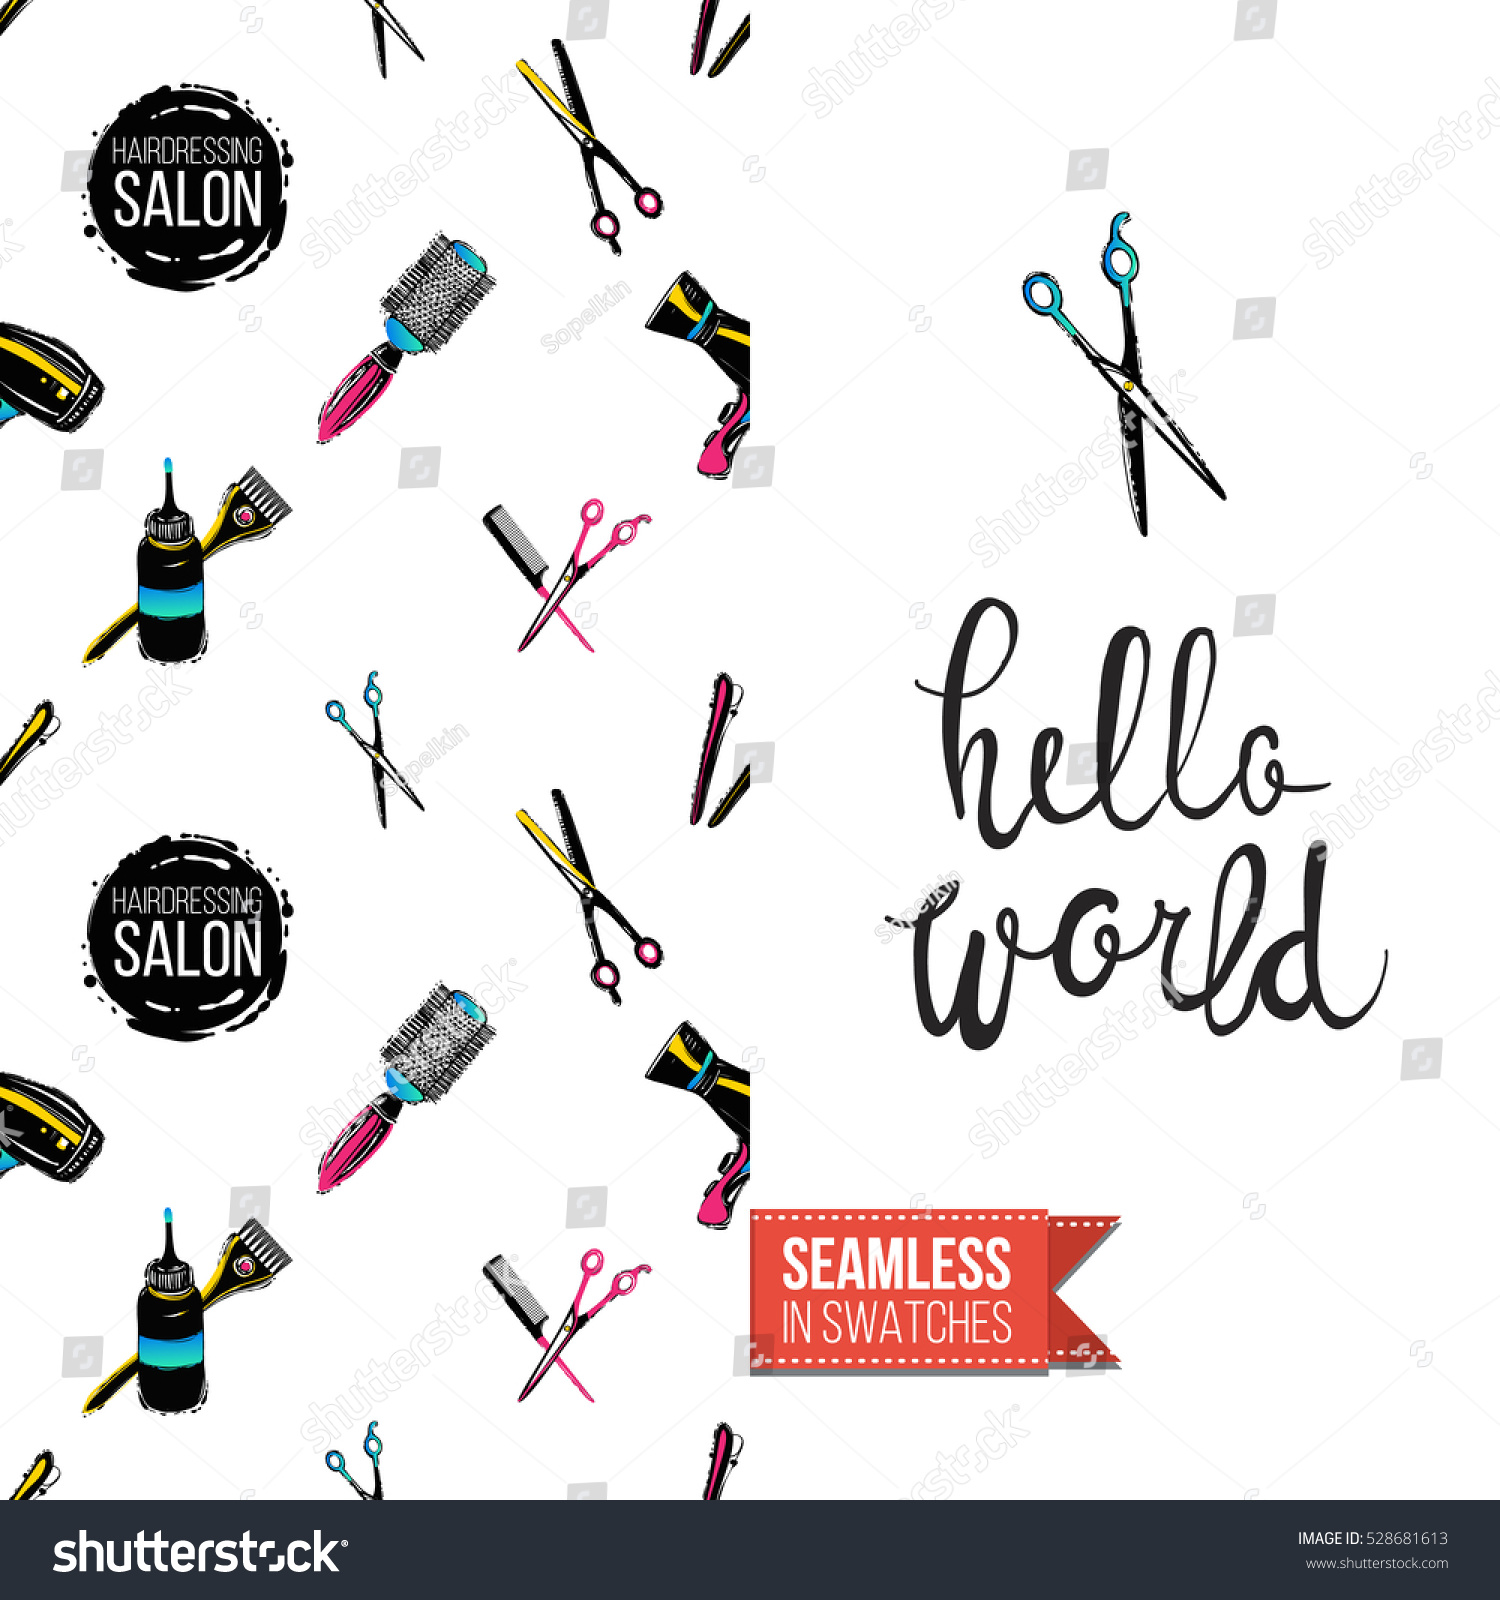 Greeting Card Promotion Beauty Salon Seamless Stock Vector 2018